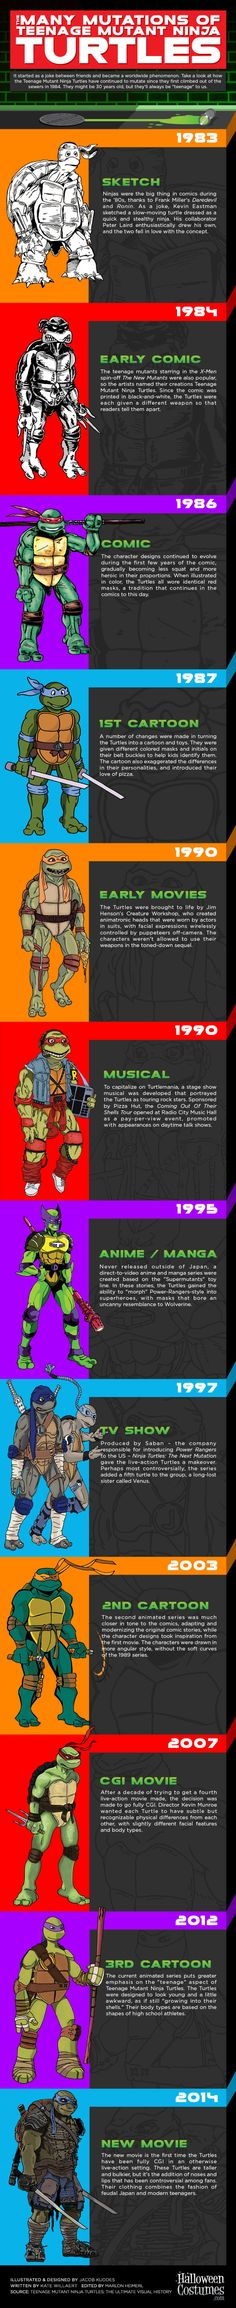 Every Teenage Mutant Ninja Turtles Costume In One #Infographic #tmnj  Because etymology is important.